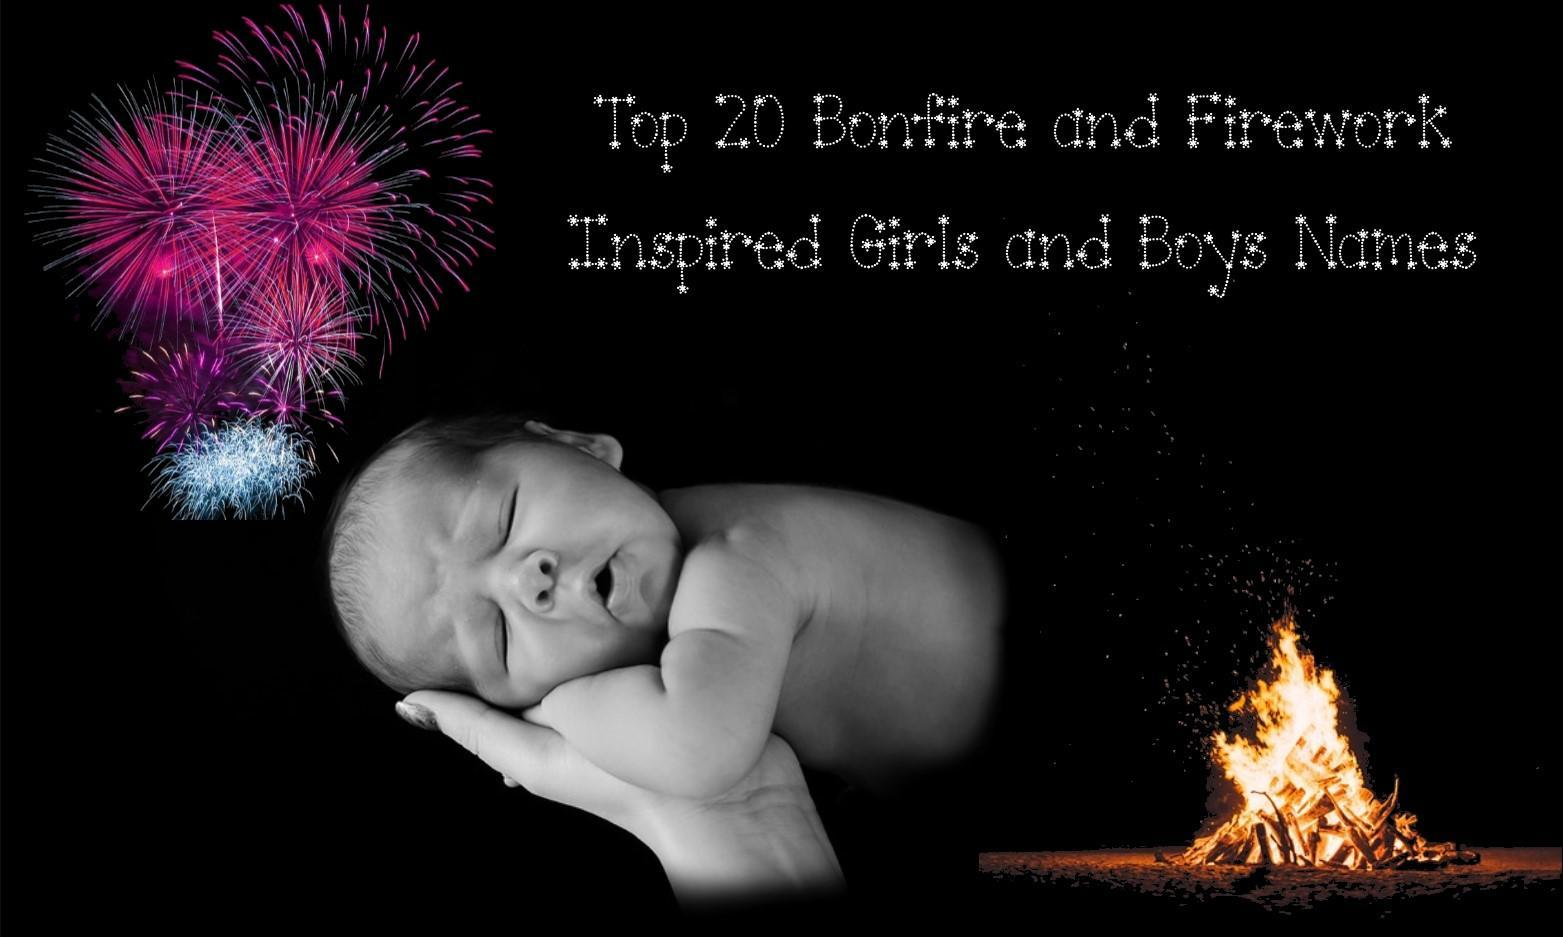 Top 20 Bonfire and Firework Inspired Girls and Boys Names